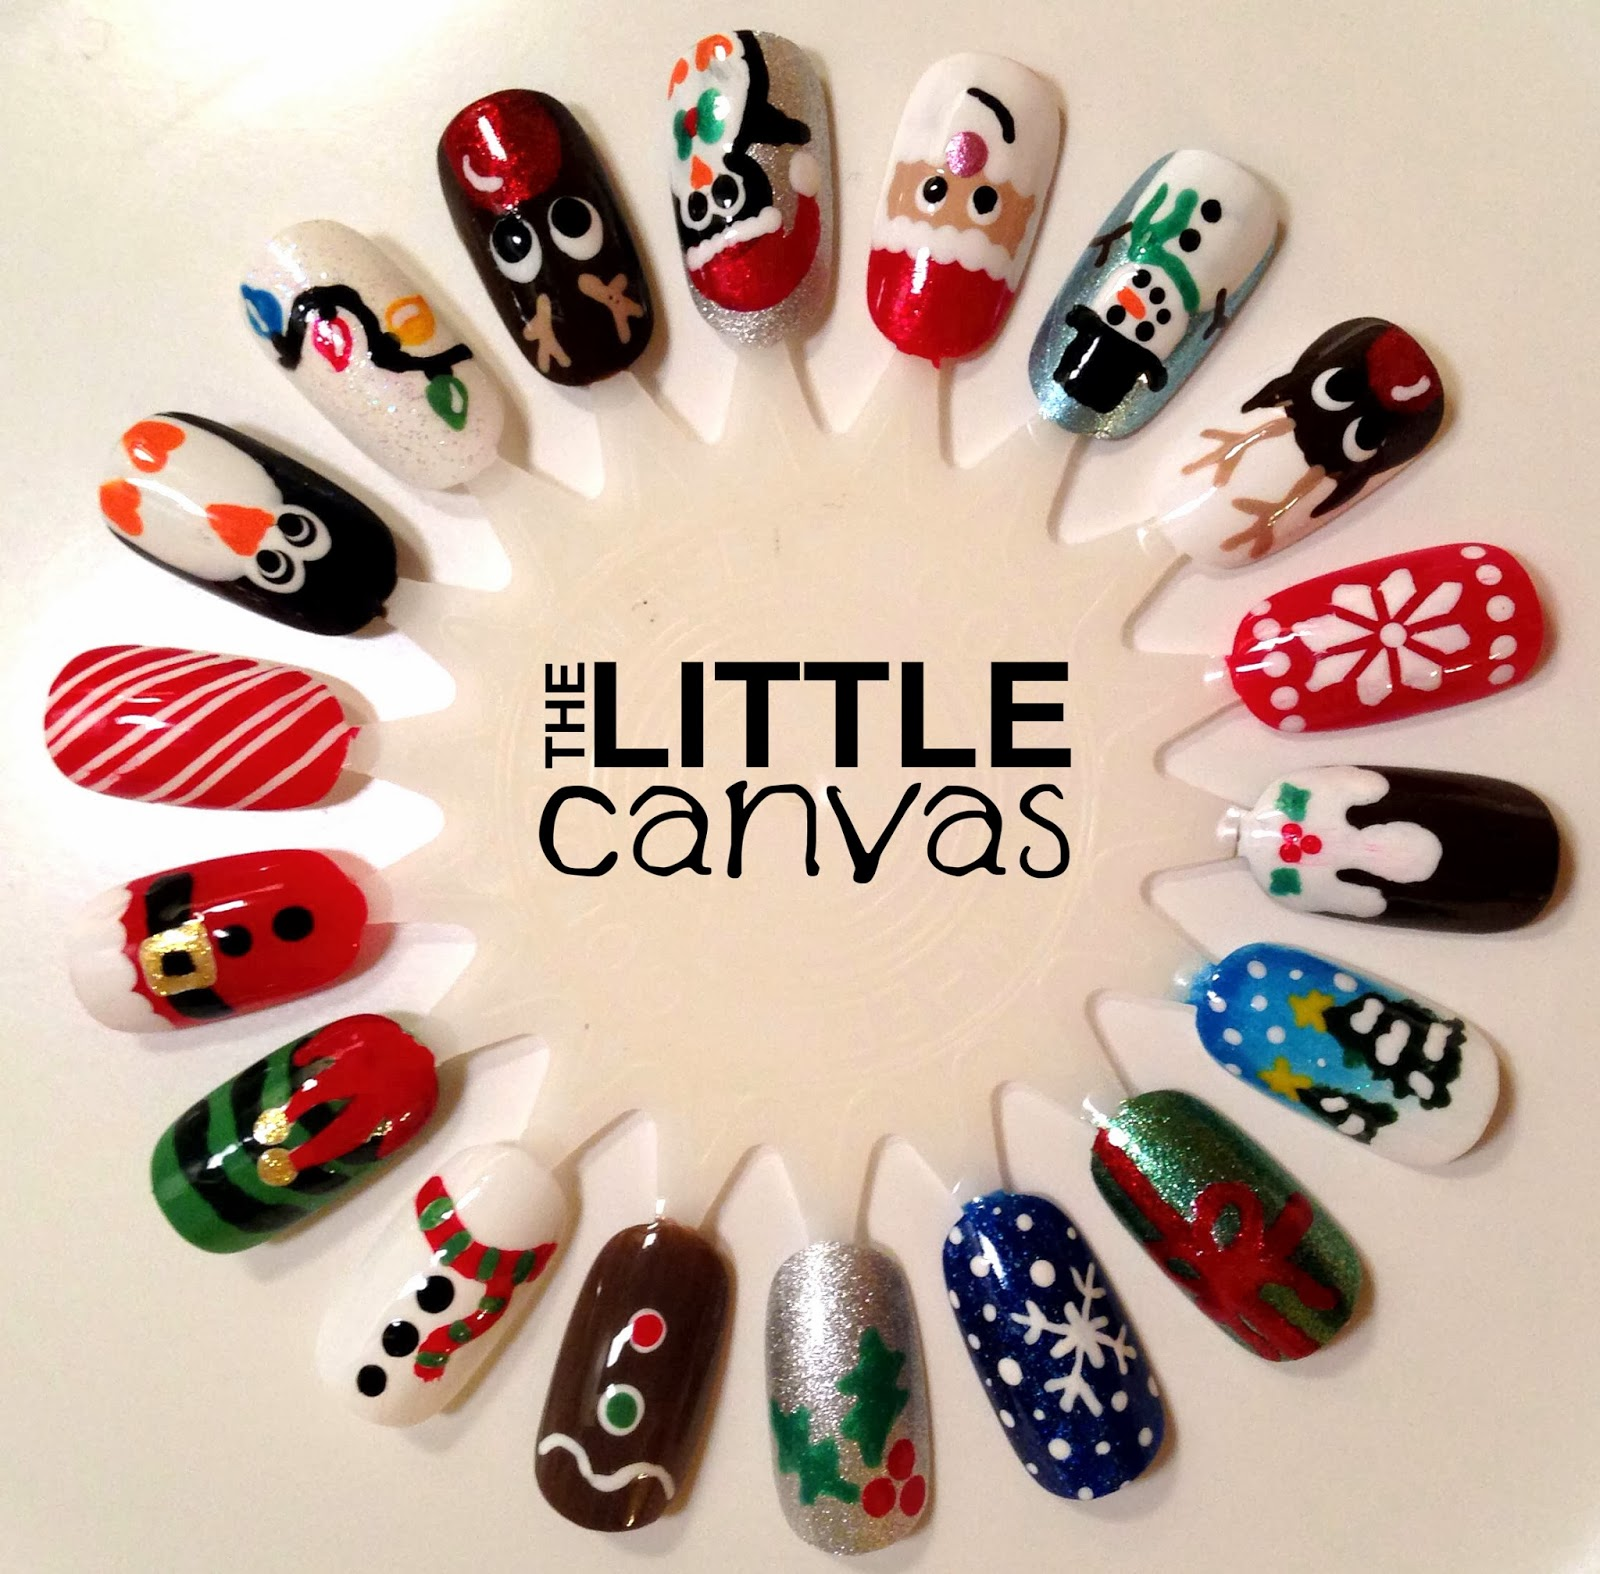 Christmas nail art wheel the little canvas from holly to figgy pudding i think i covered all the different christmas themes there are wayyyy too many colors to list what i did end up using prinsesfo Image collections